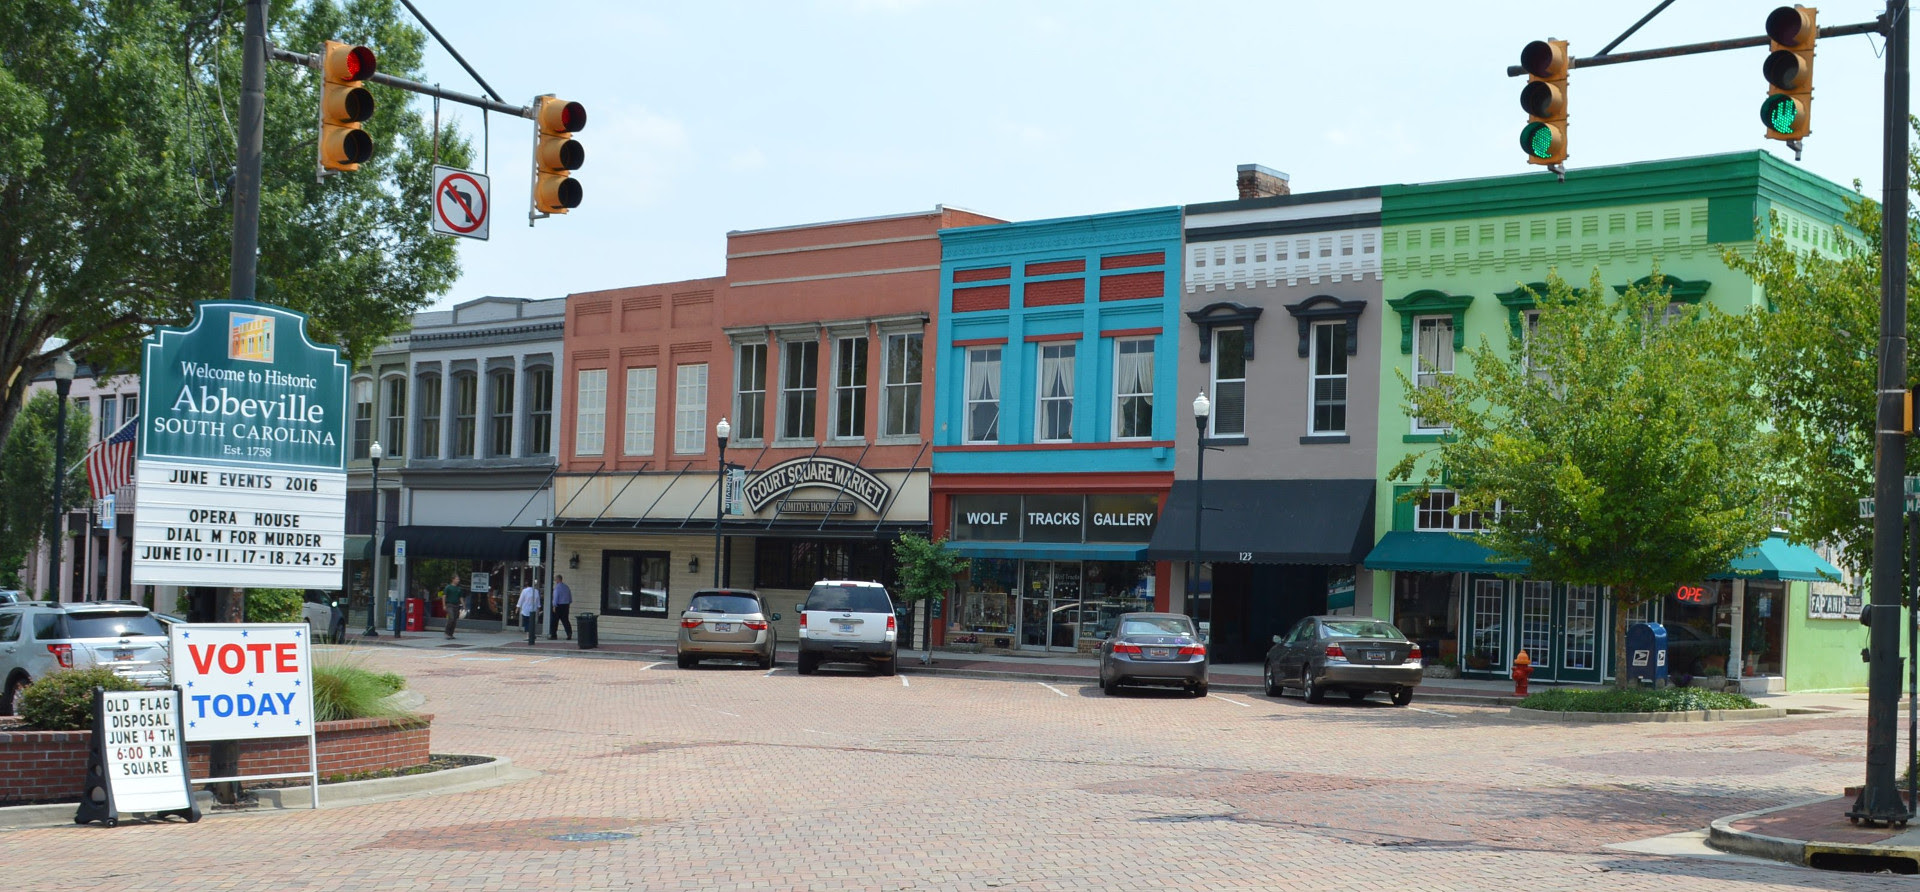 Commercial Properties - Listings | Abbeville County, SC ...